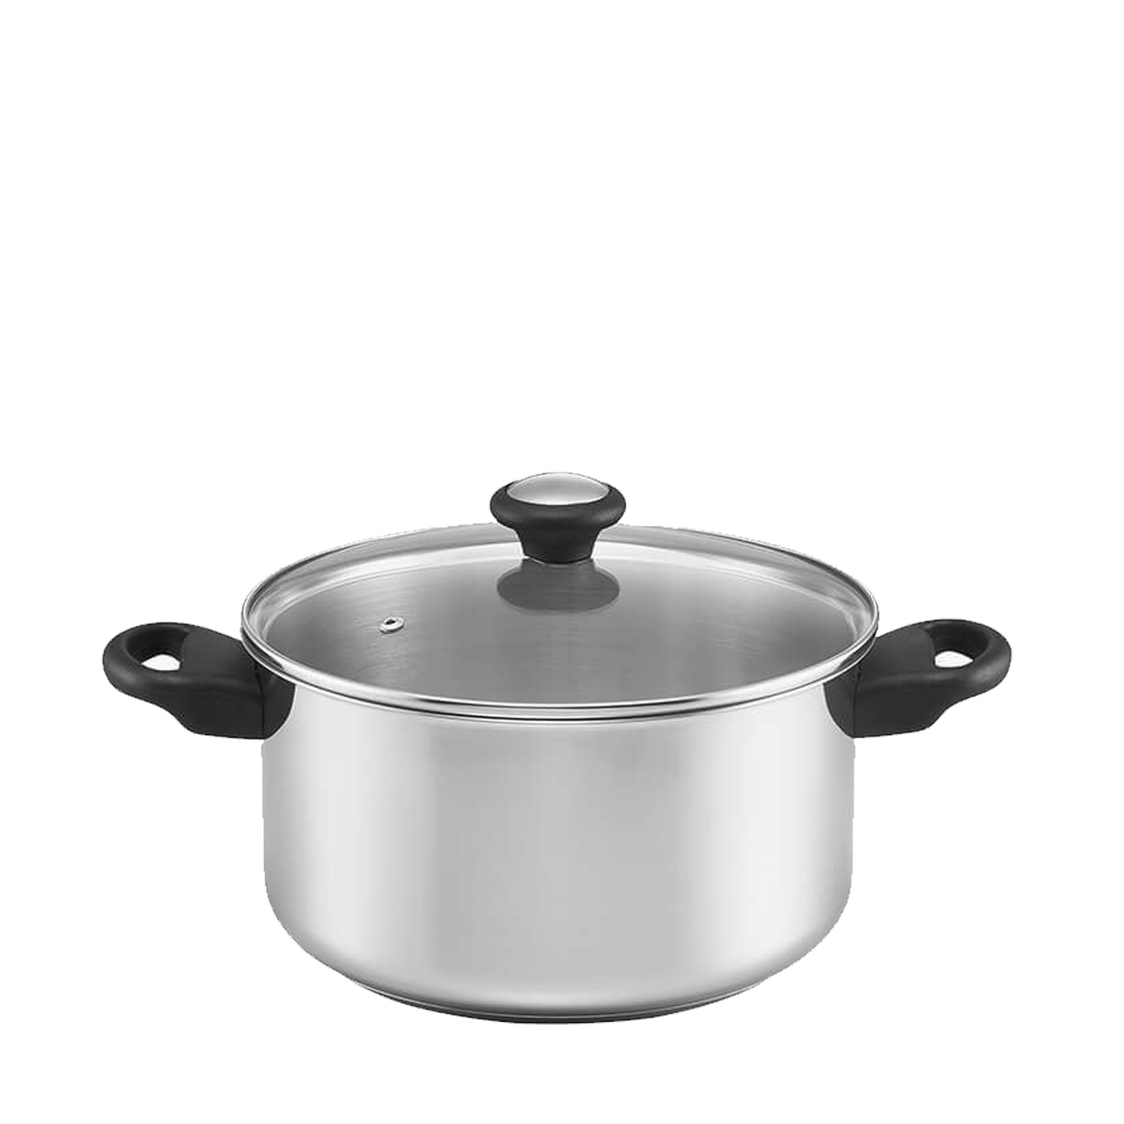 Good Stainless Steel 24cm 6QT Covered Stock Pot With Handles 70578